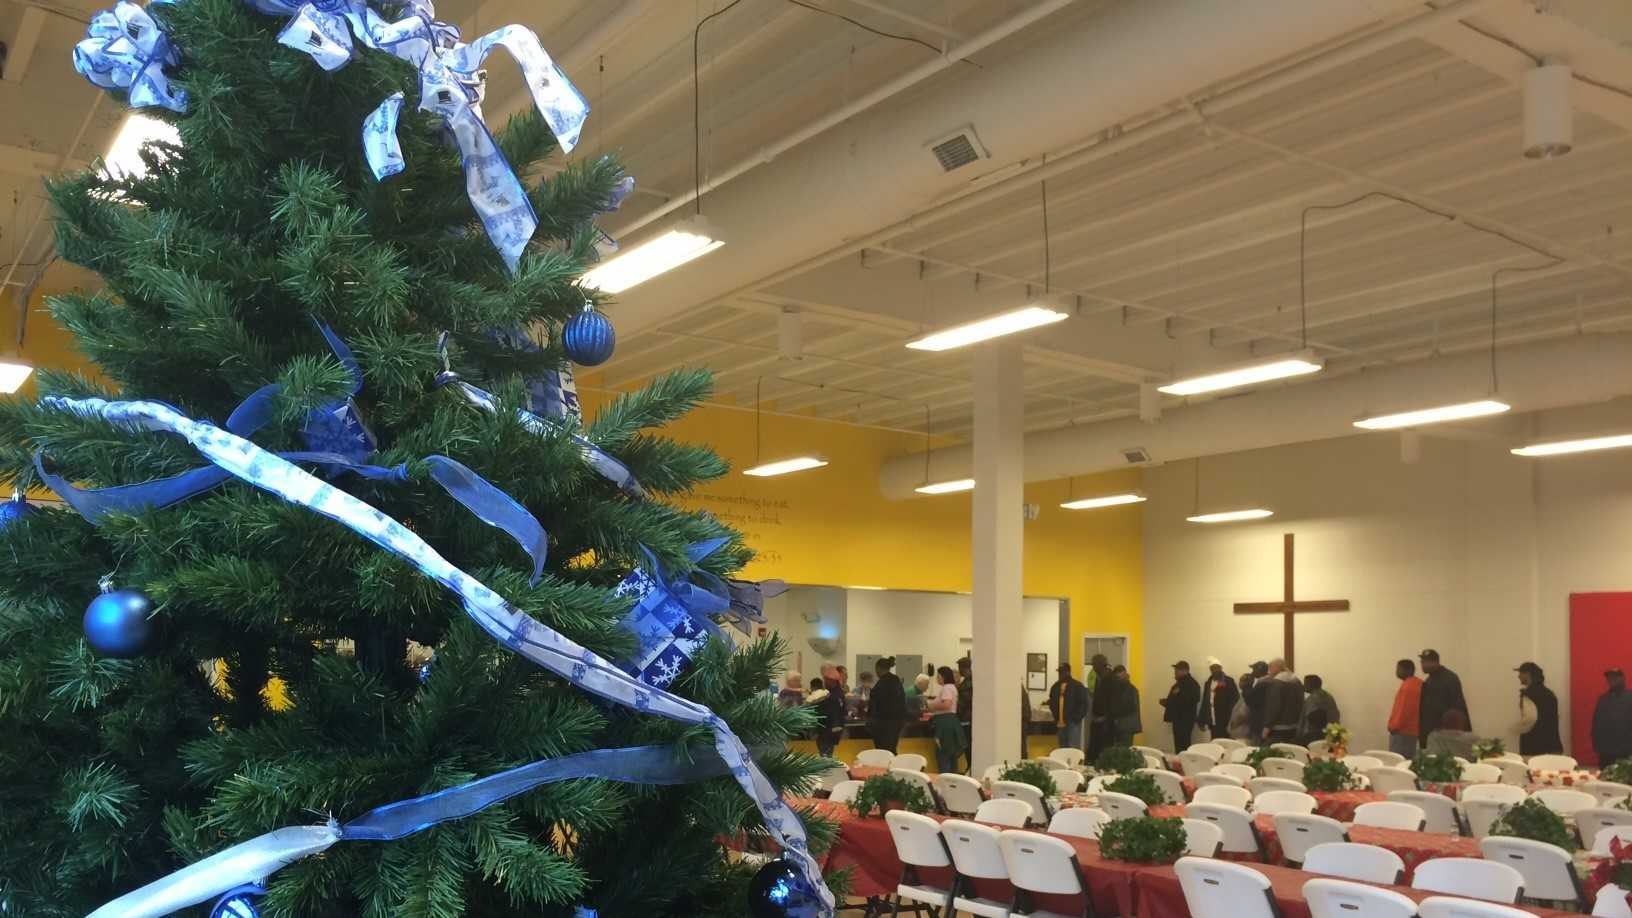 The Spartanburg Soup Kitchen provides meals and presents on Christmas Eve and Christmas Day.